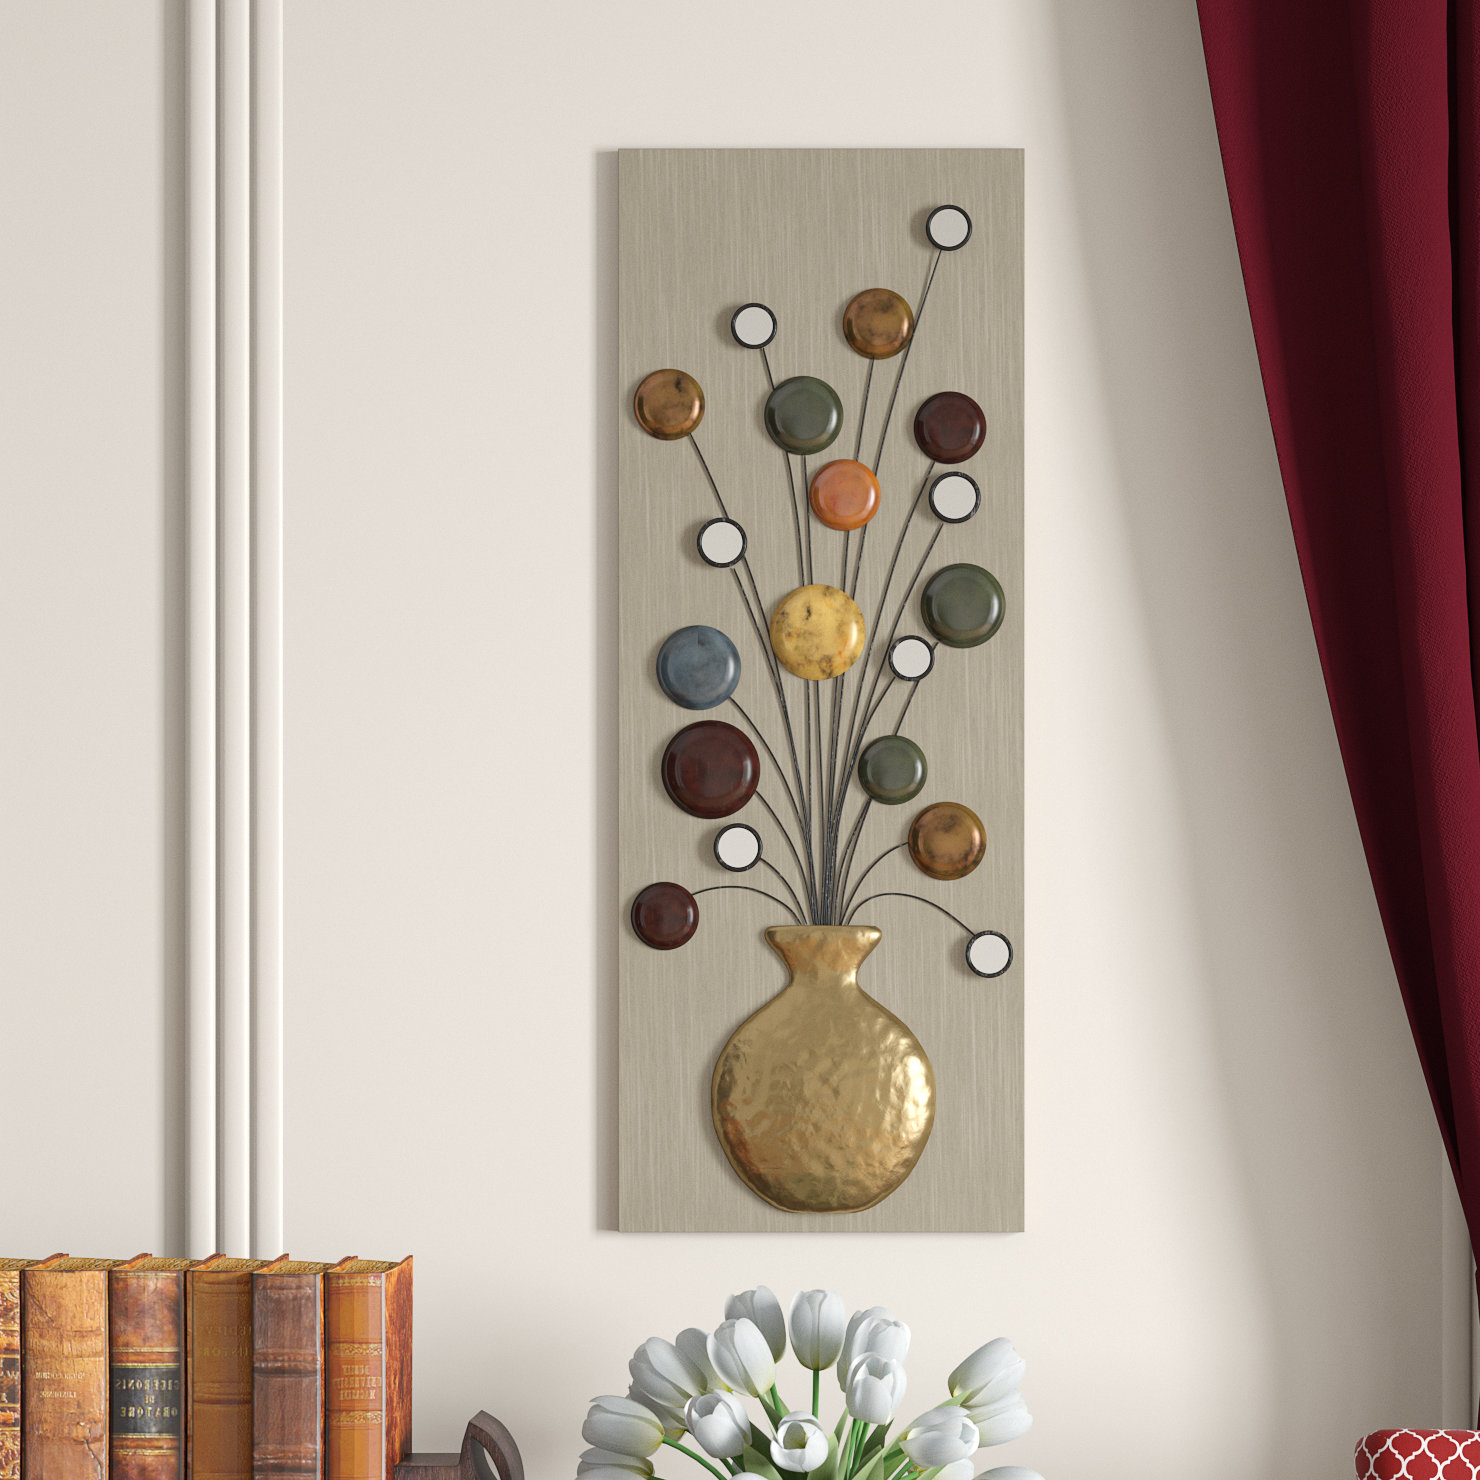 Raheem Flowers Metal Wall Decor By Alcott Hill Regarding Most Recent Charlton Home Faux Vase And Flower Metal Wall Décor & Reviews (Gallery 6 of 20)